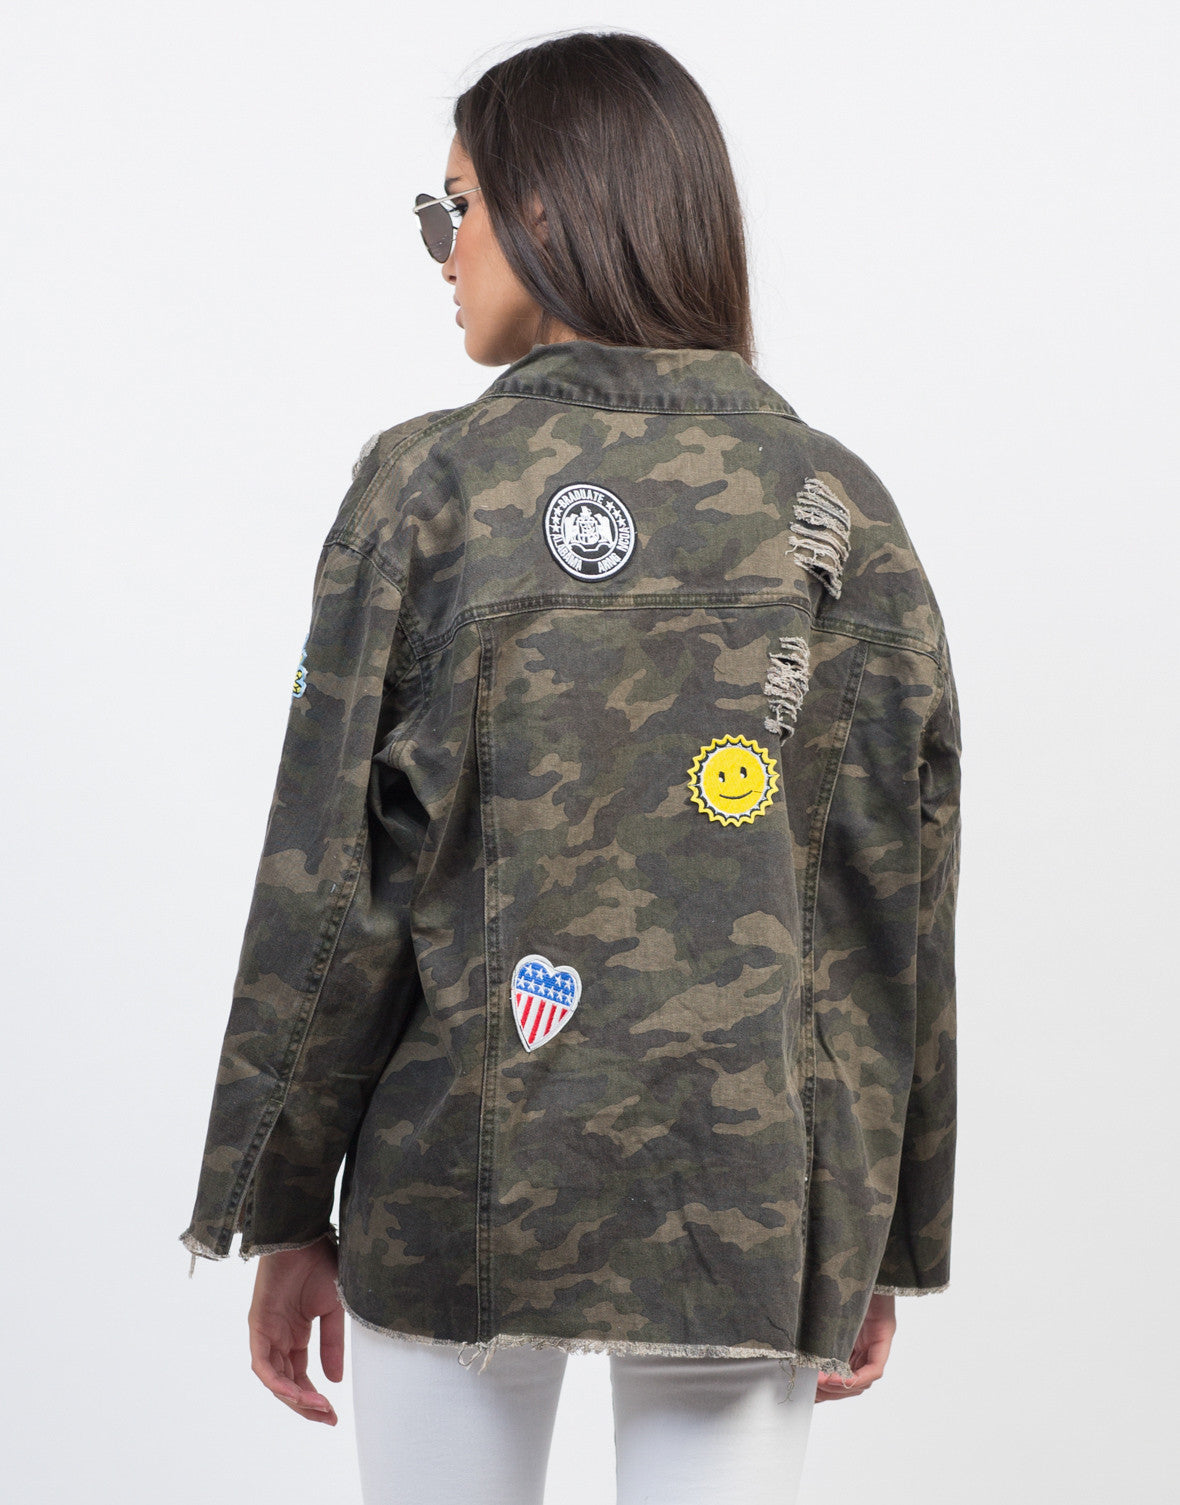 Back View of Distressed Camo Patched Jacket